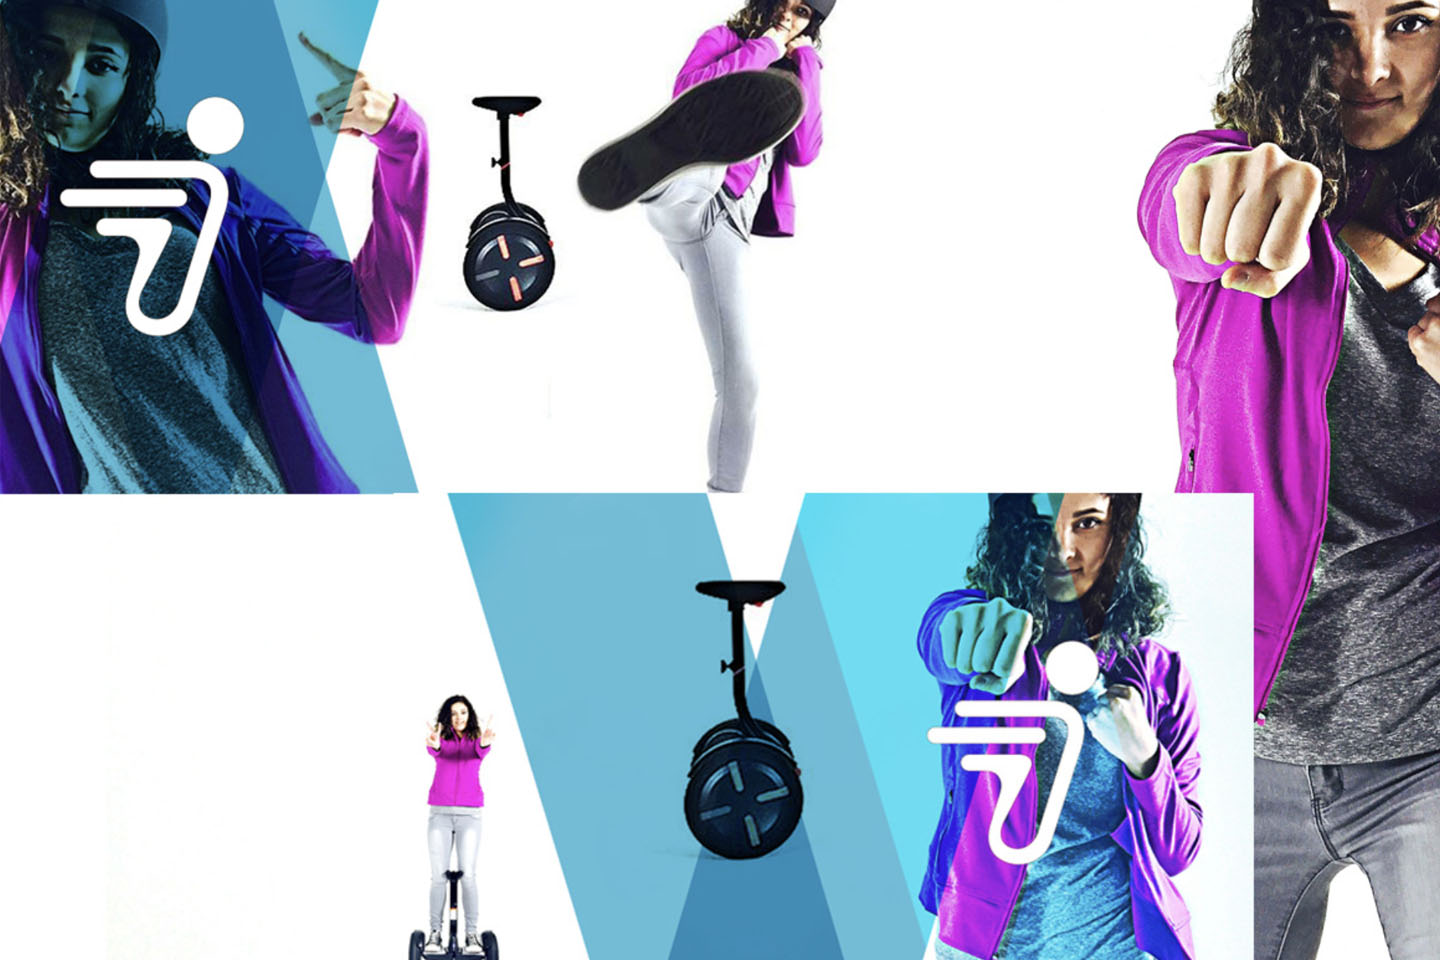 Segway electric transportation campaign for CES Show in Las Vegas